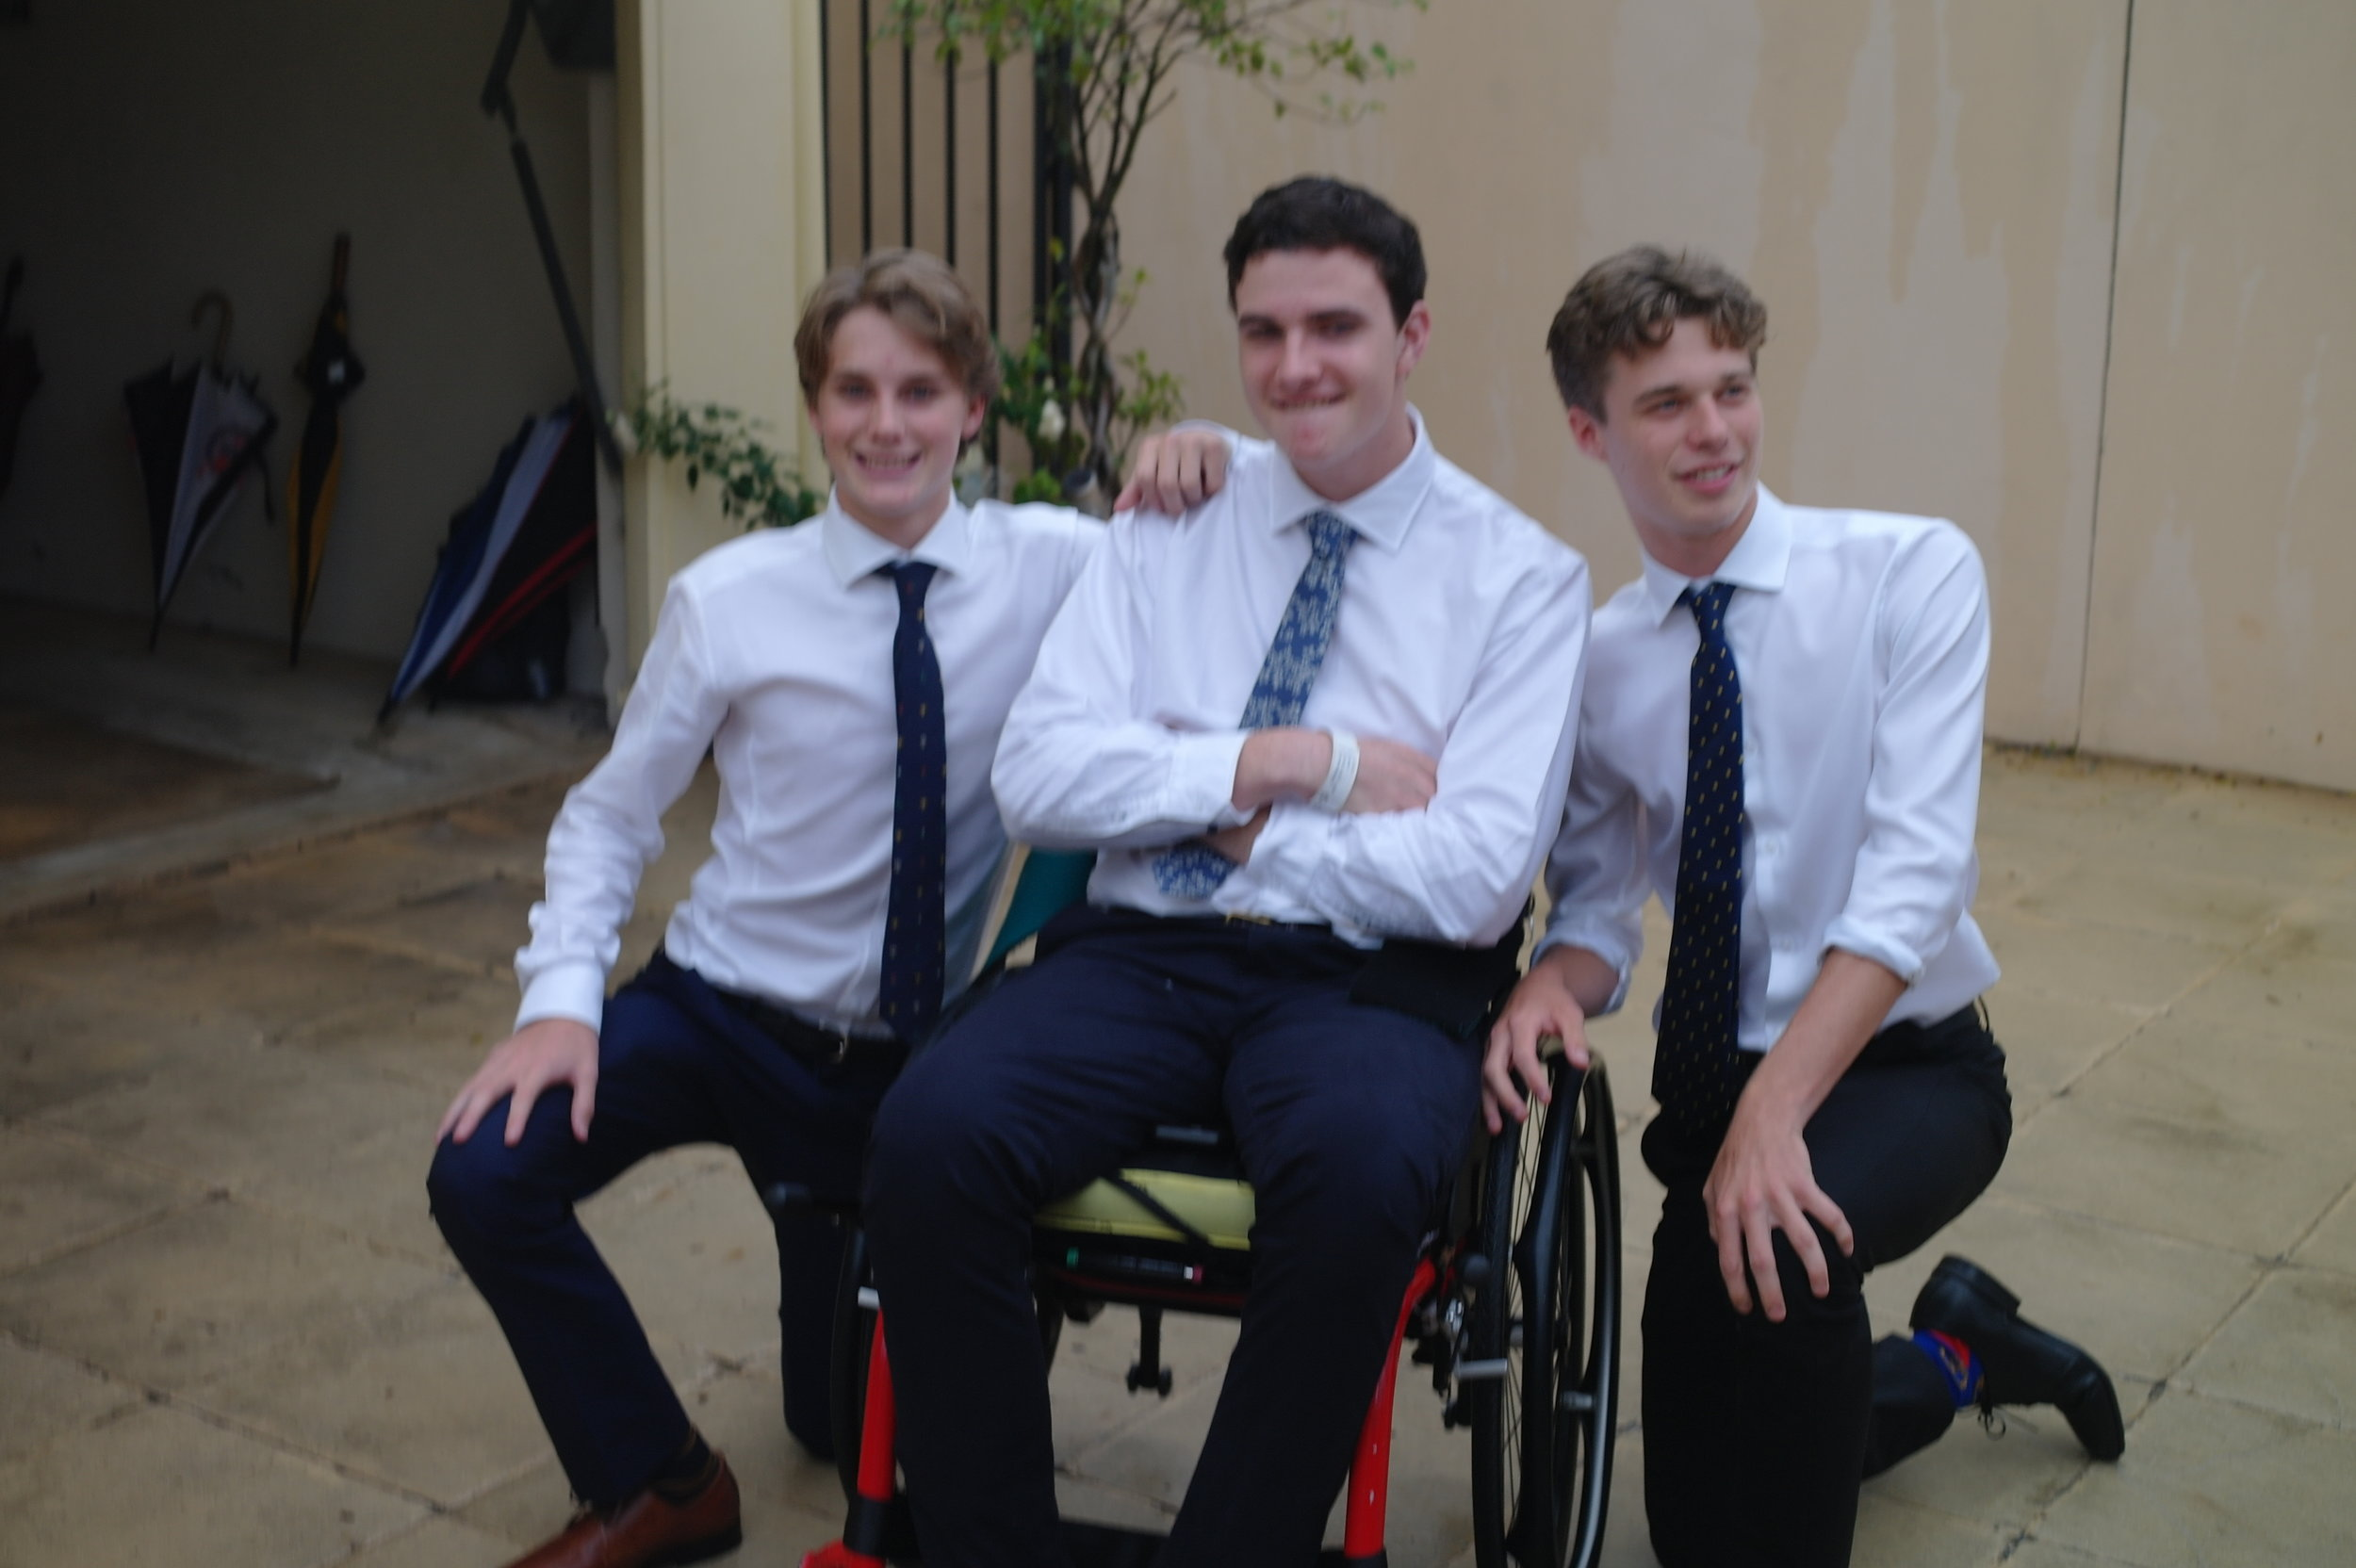 Conor with mates at his school semi formal